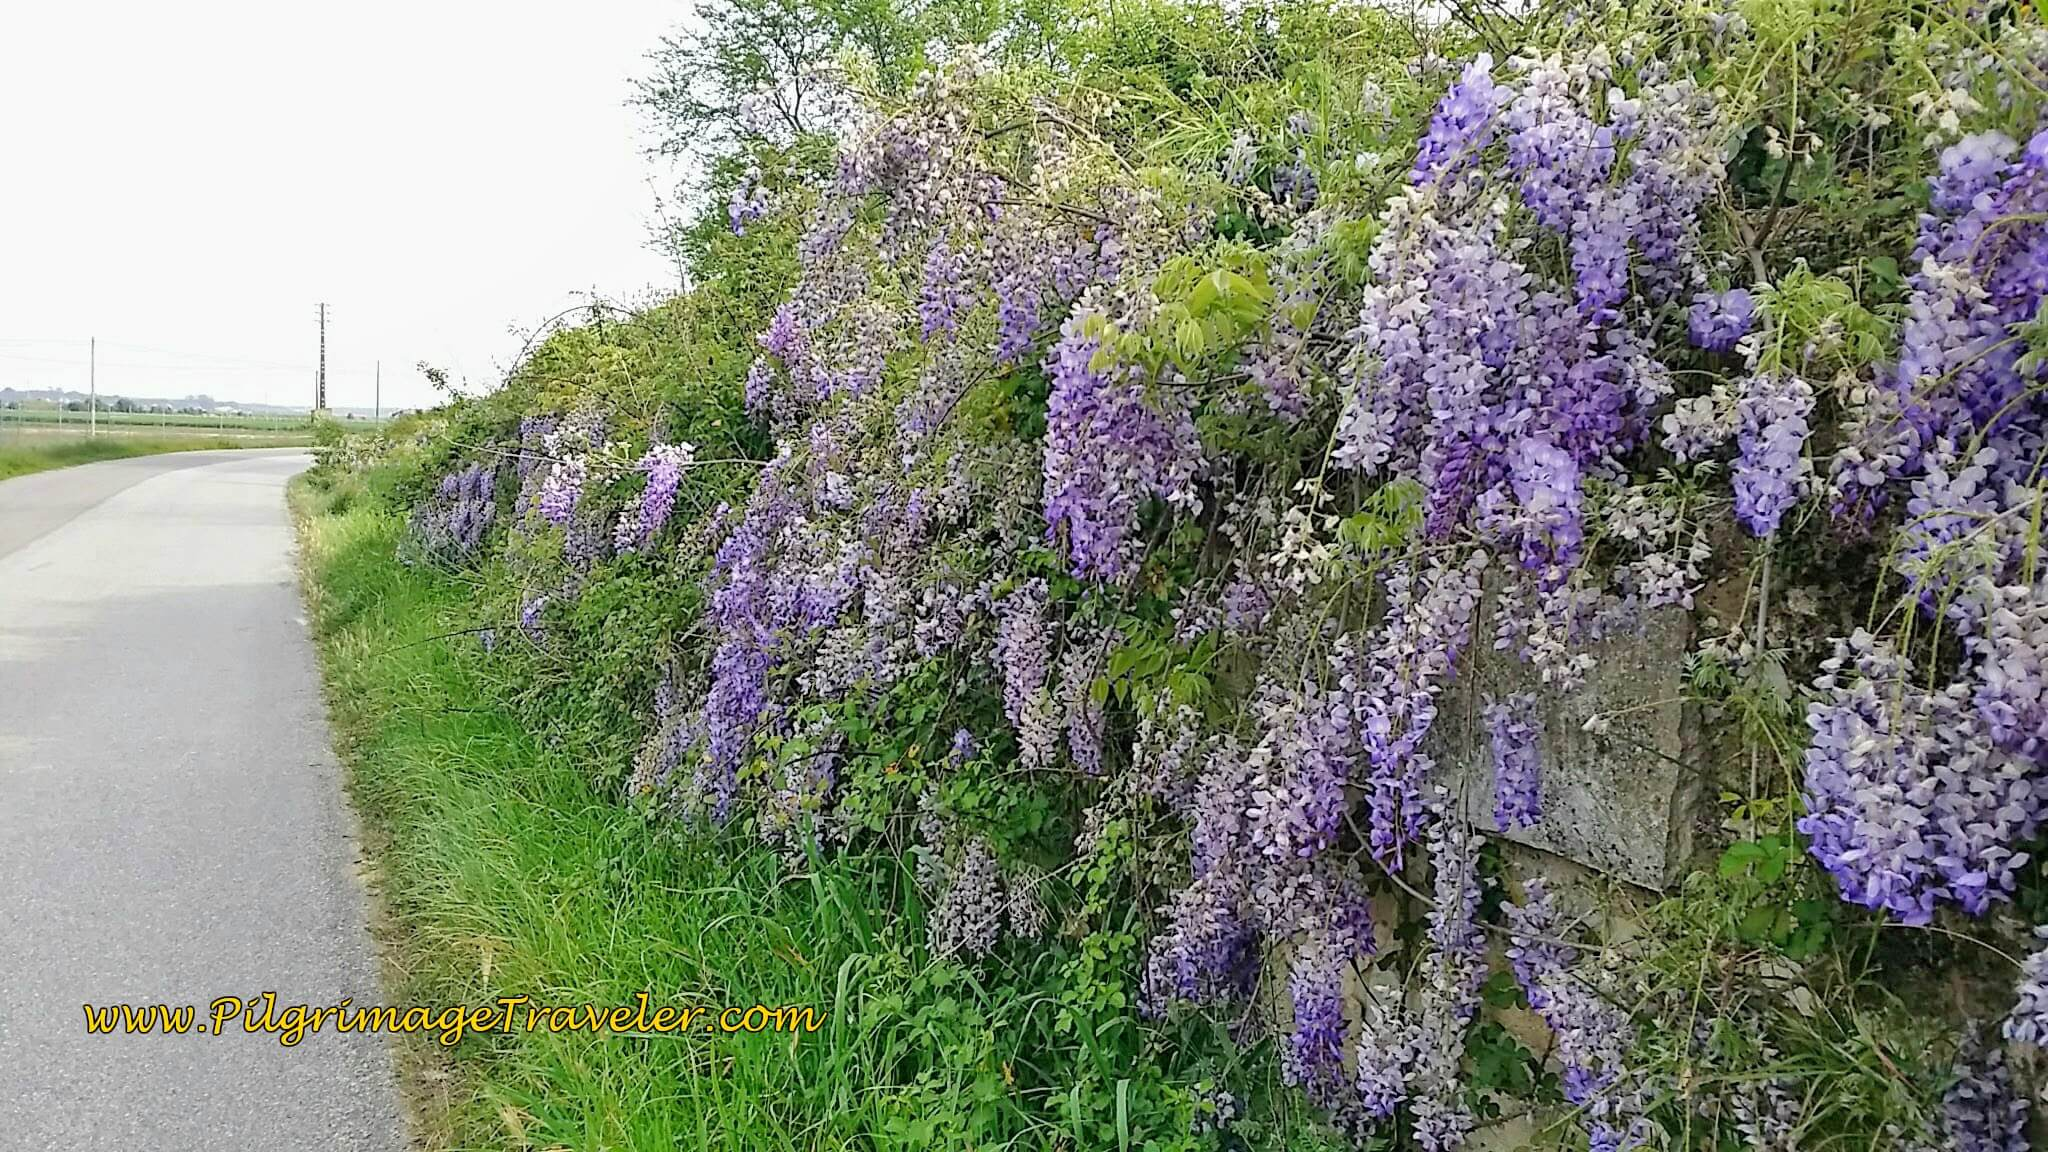 Wild Wisteria Along the N3-3, Renguengo, Portugal